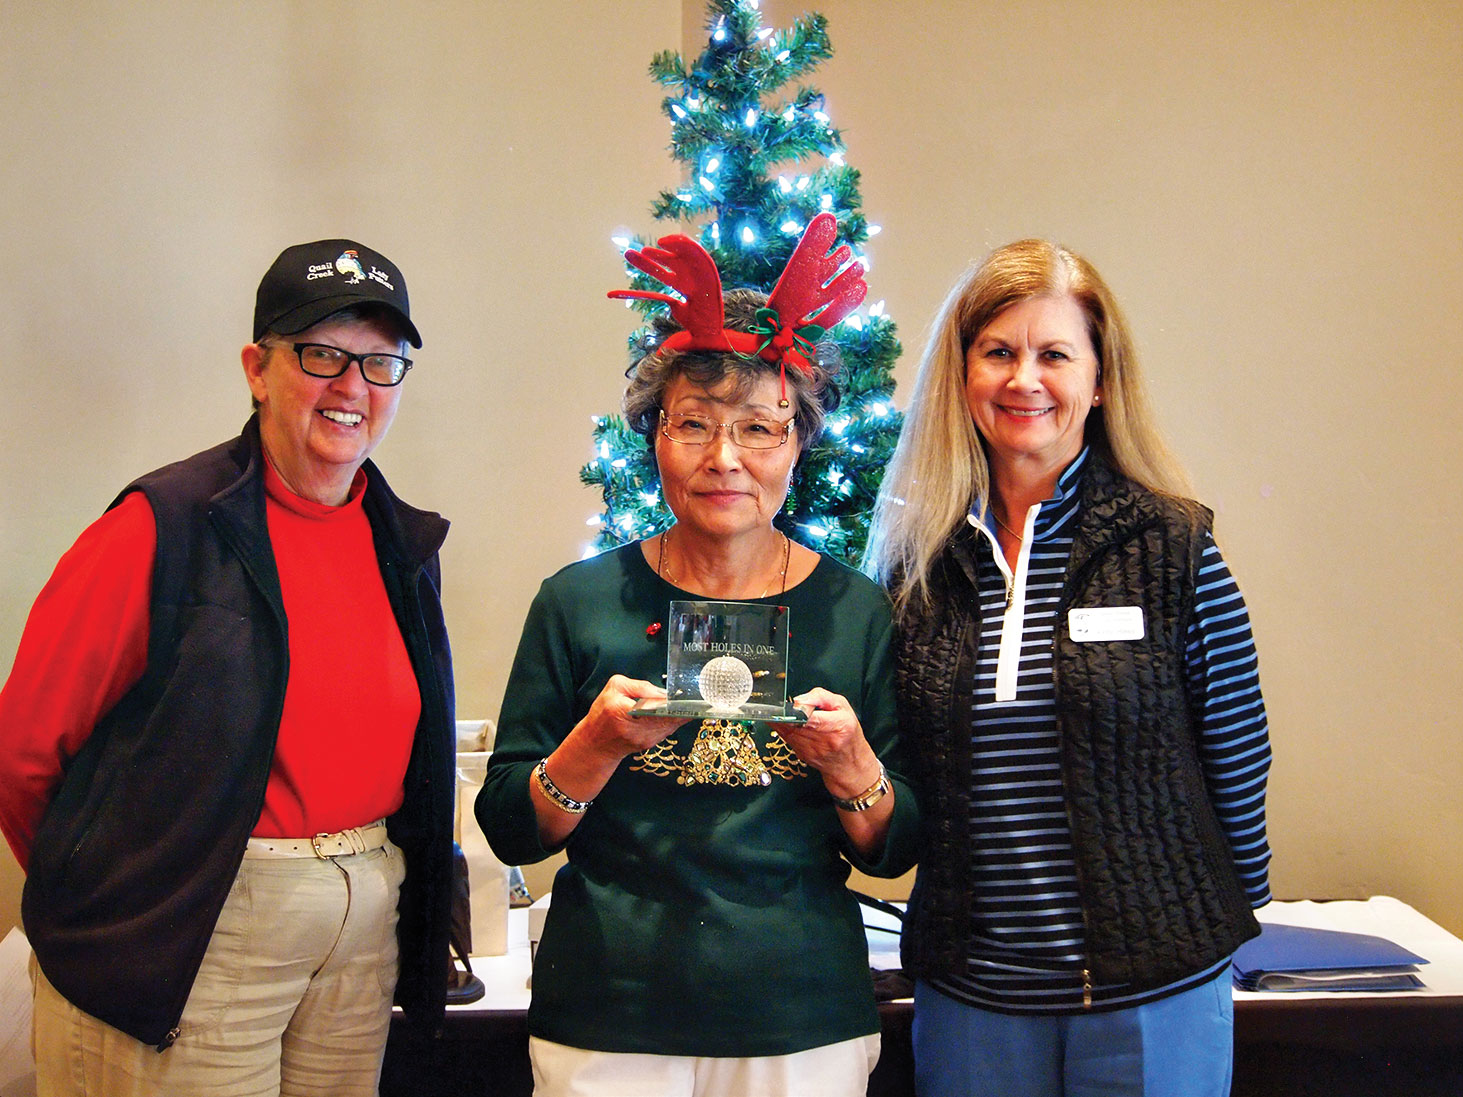 Left to right: Cathy Thiele, Yoshie Hennessy and Kelly Hines all admired Yoshie's award for getting 26 holes-in-one during a three month period; photo by Sylvia Butler